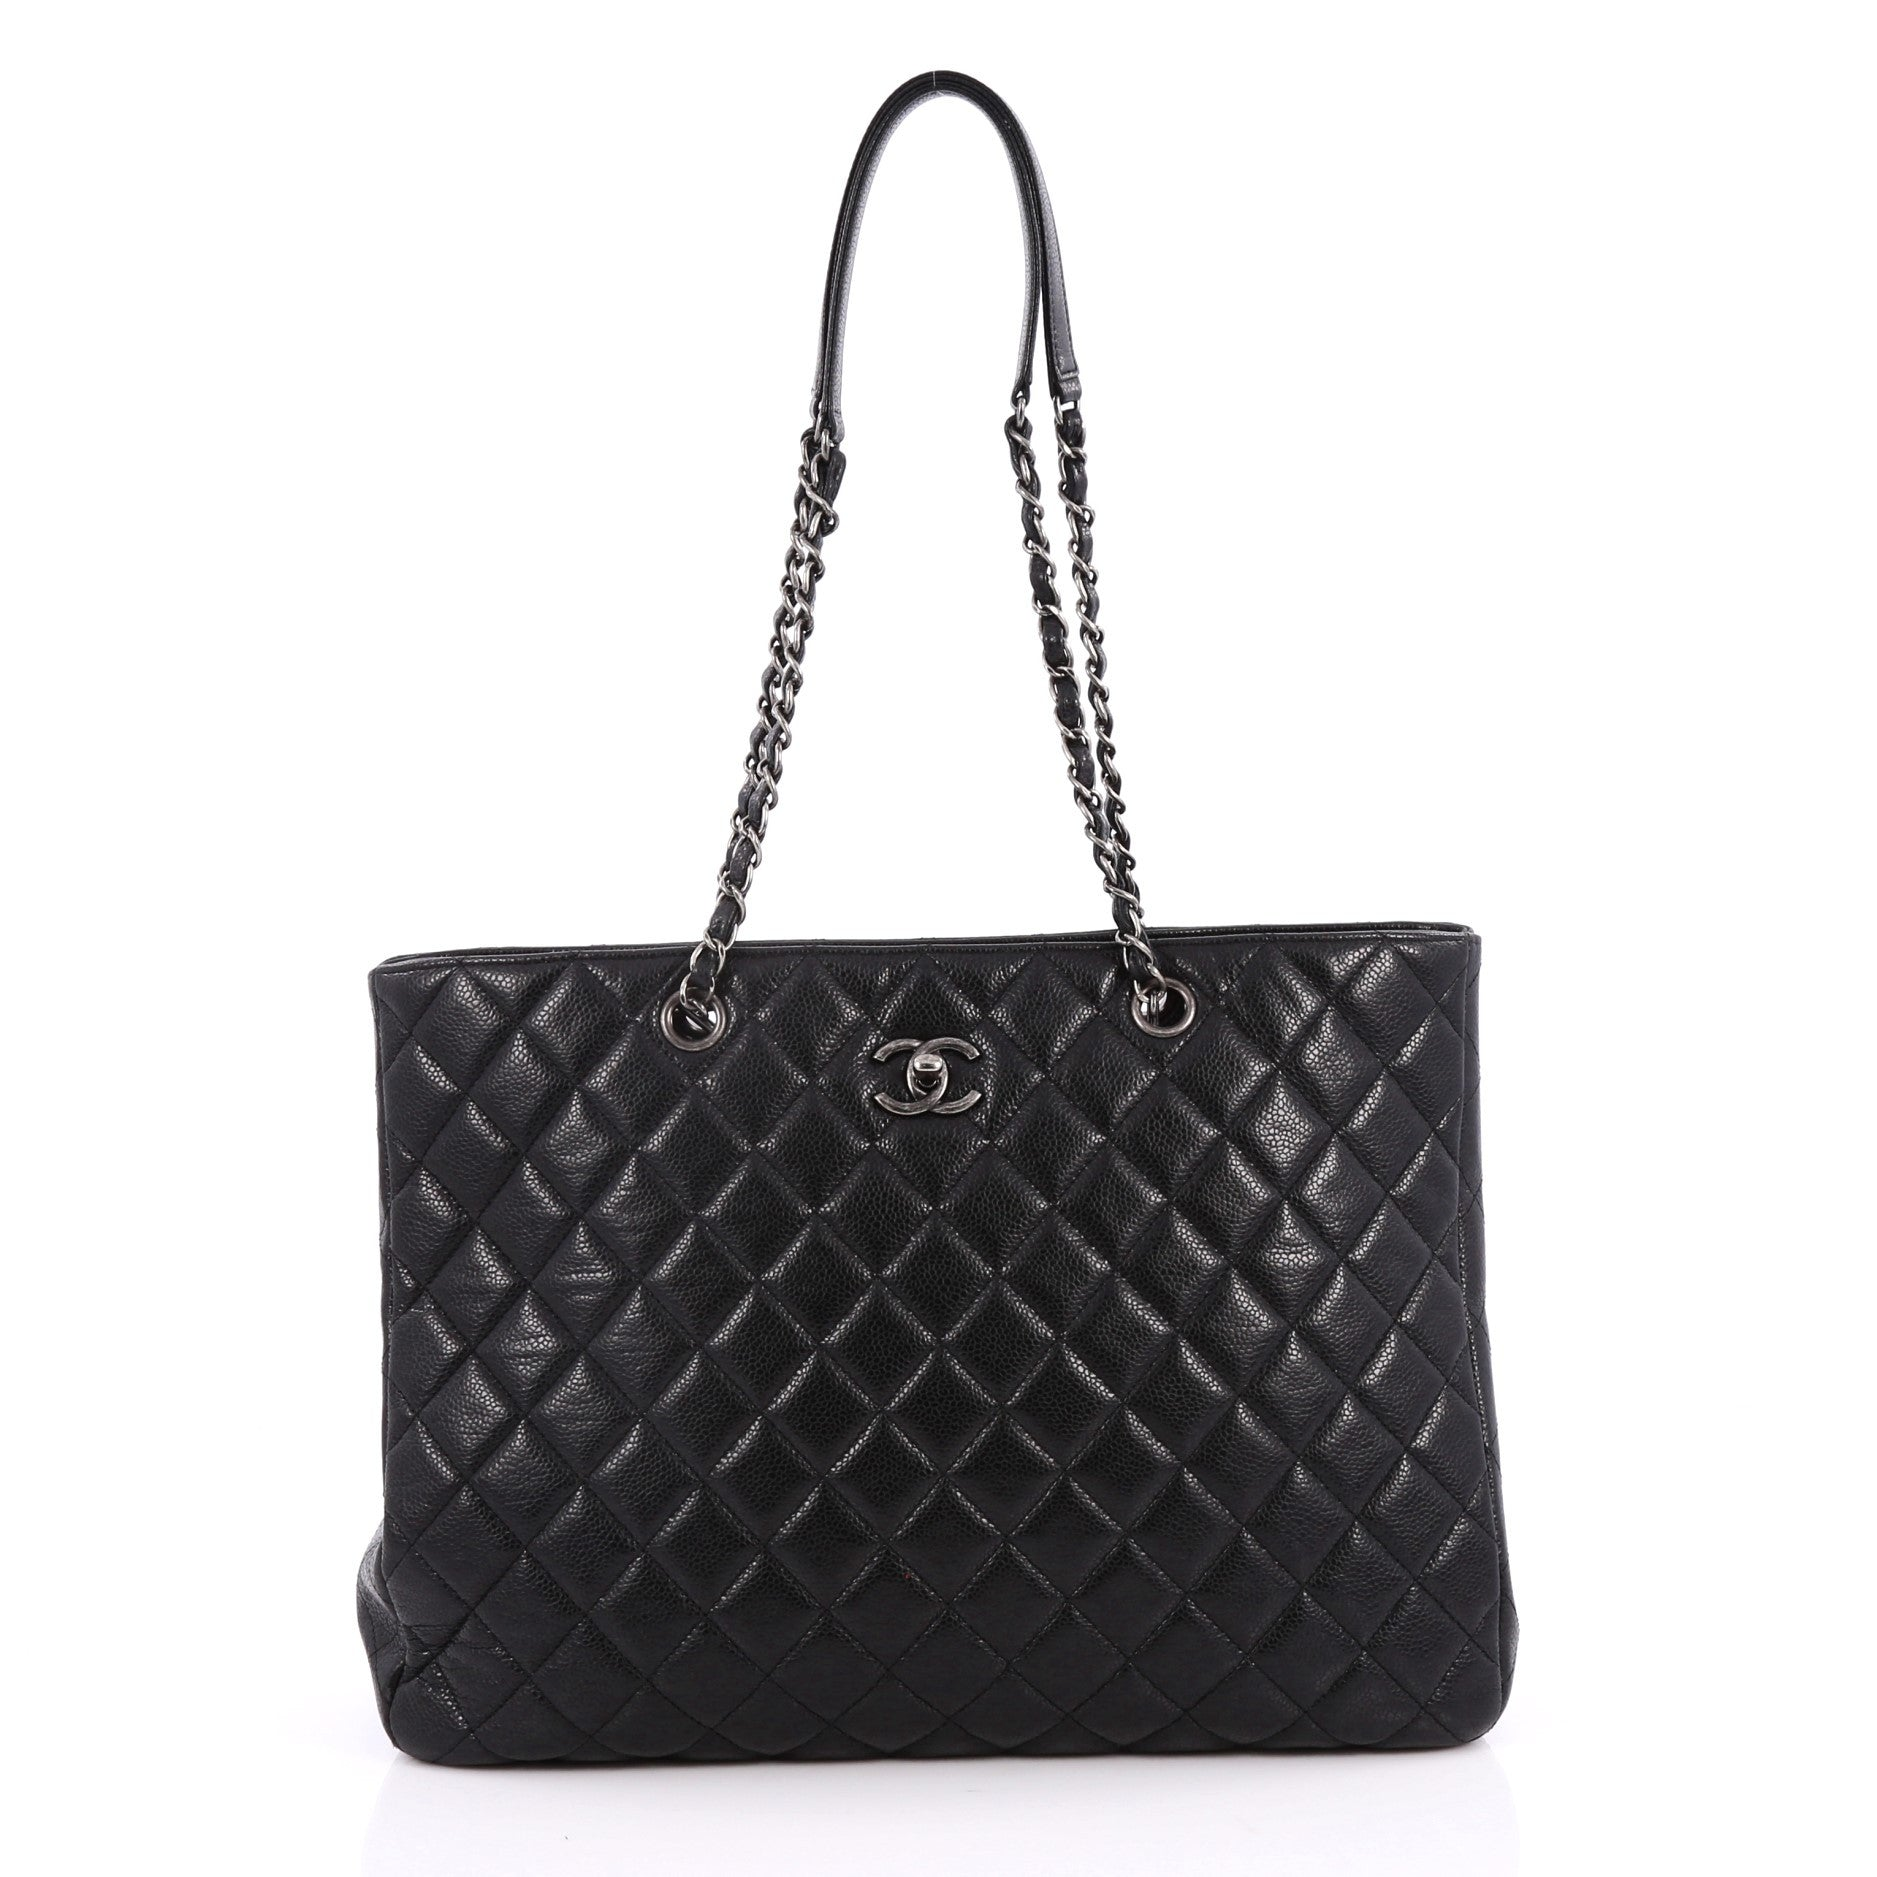 26bdfac35696fc 20258-01_Chanel_Classic_CC_Shopping_Tote_Quilted_C_2D_0003.jpg?v=1499782019